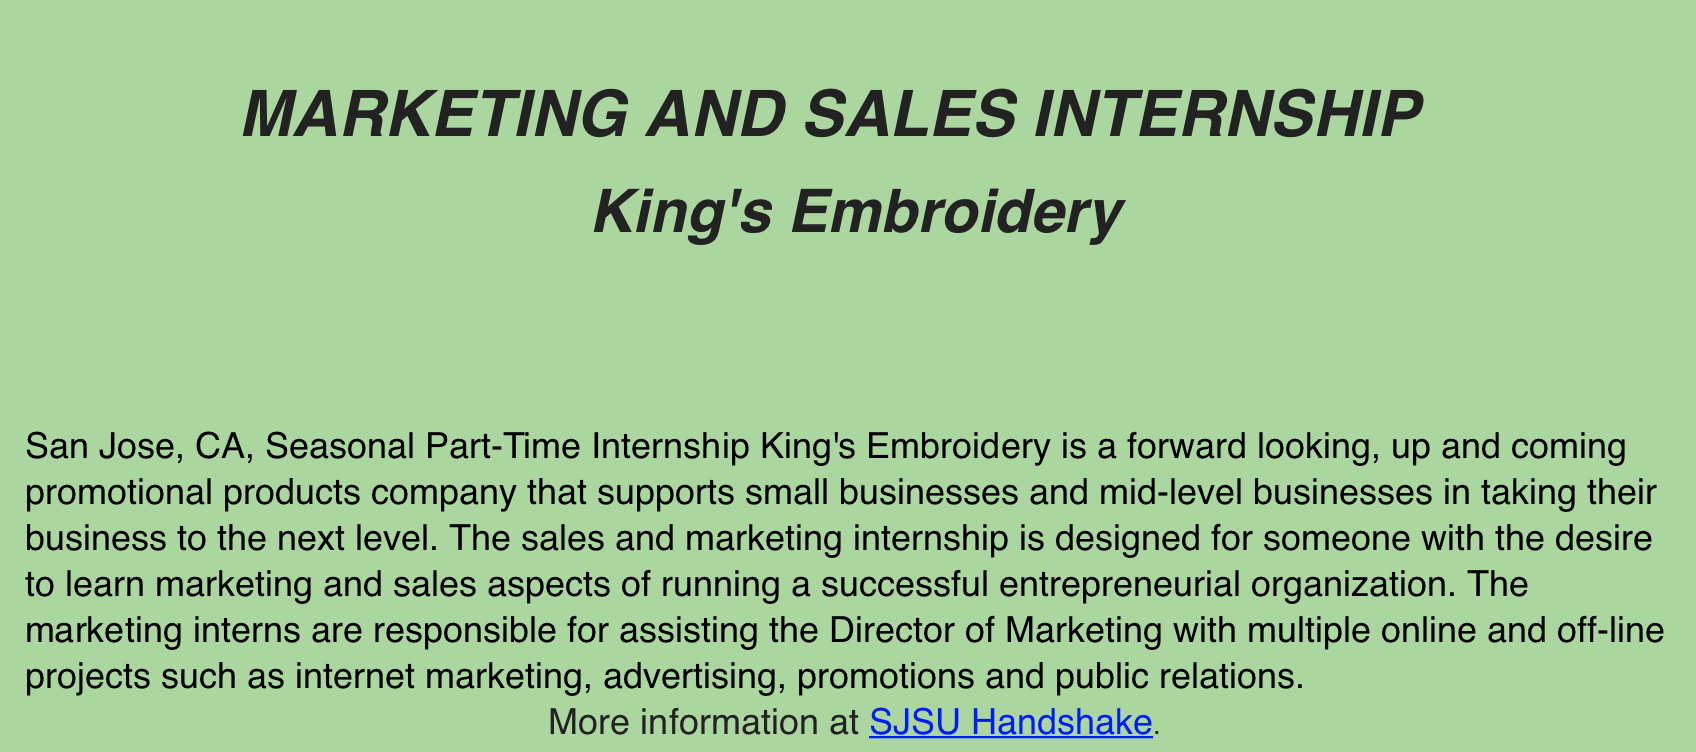 Hi Comm Majors, Here is an opportunity to work in the